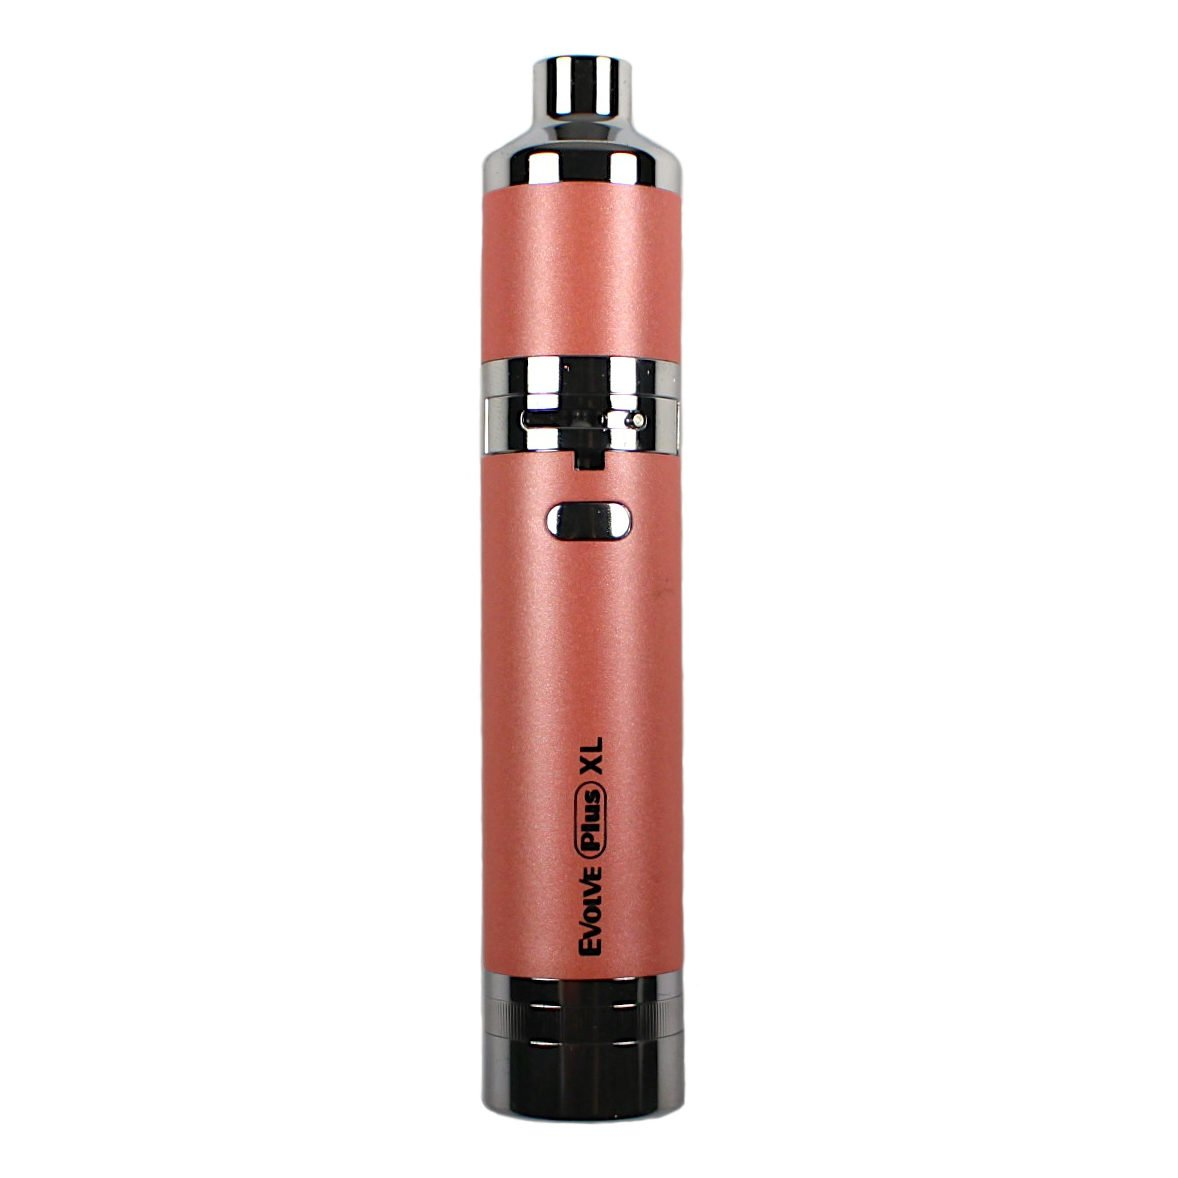 yocan evolve plus xl instructions how to use